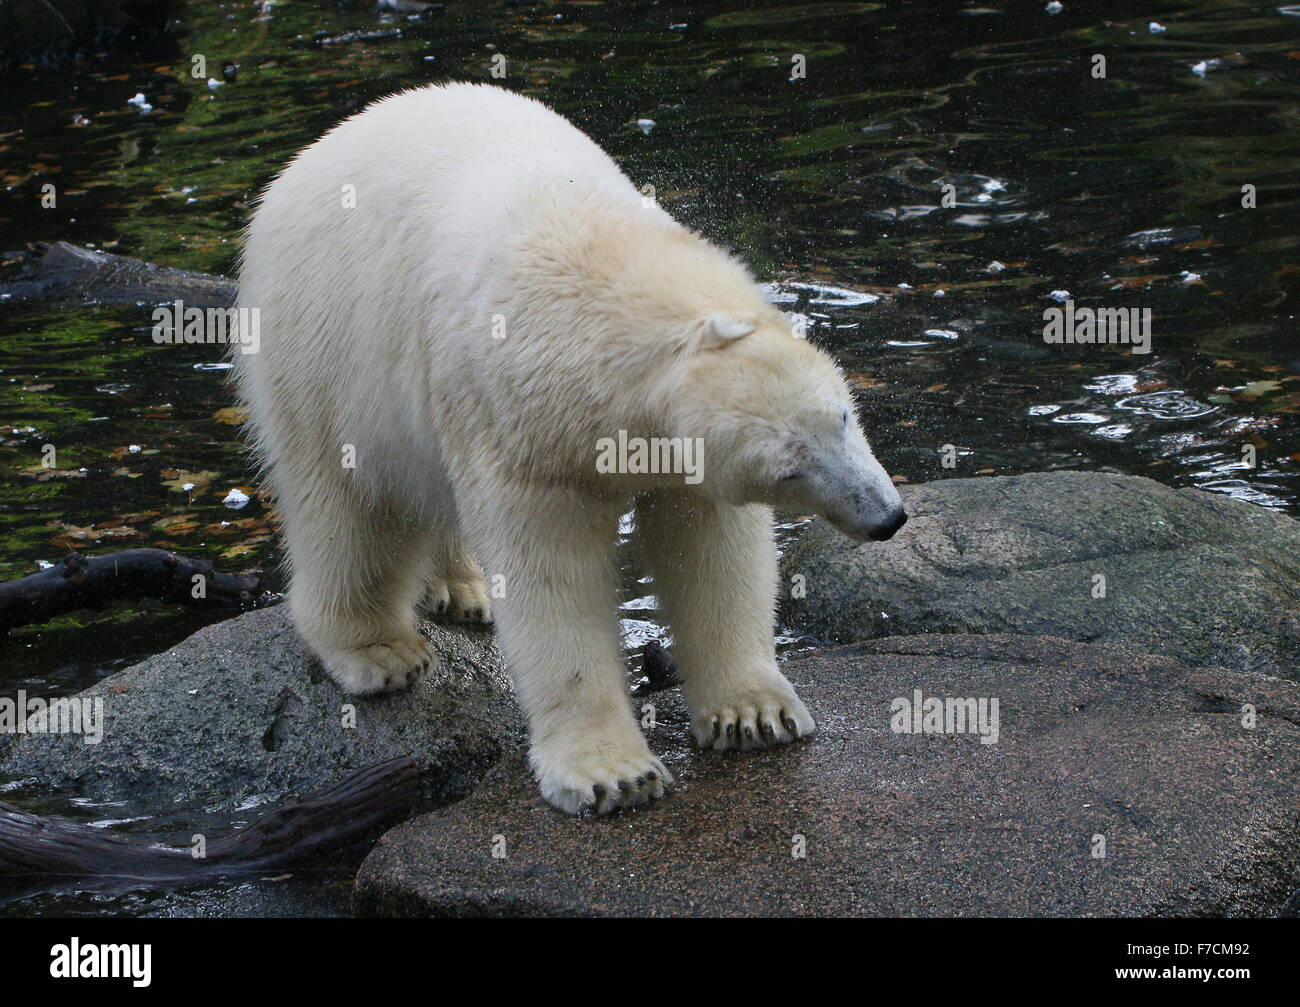 Mature polar bear (Ursus maritimus) near the water's edge, shrugging off excess water from her fur - Stock Image